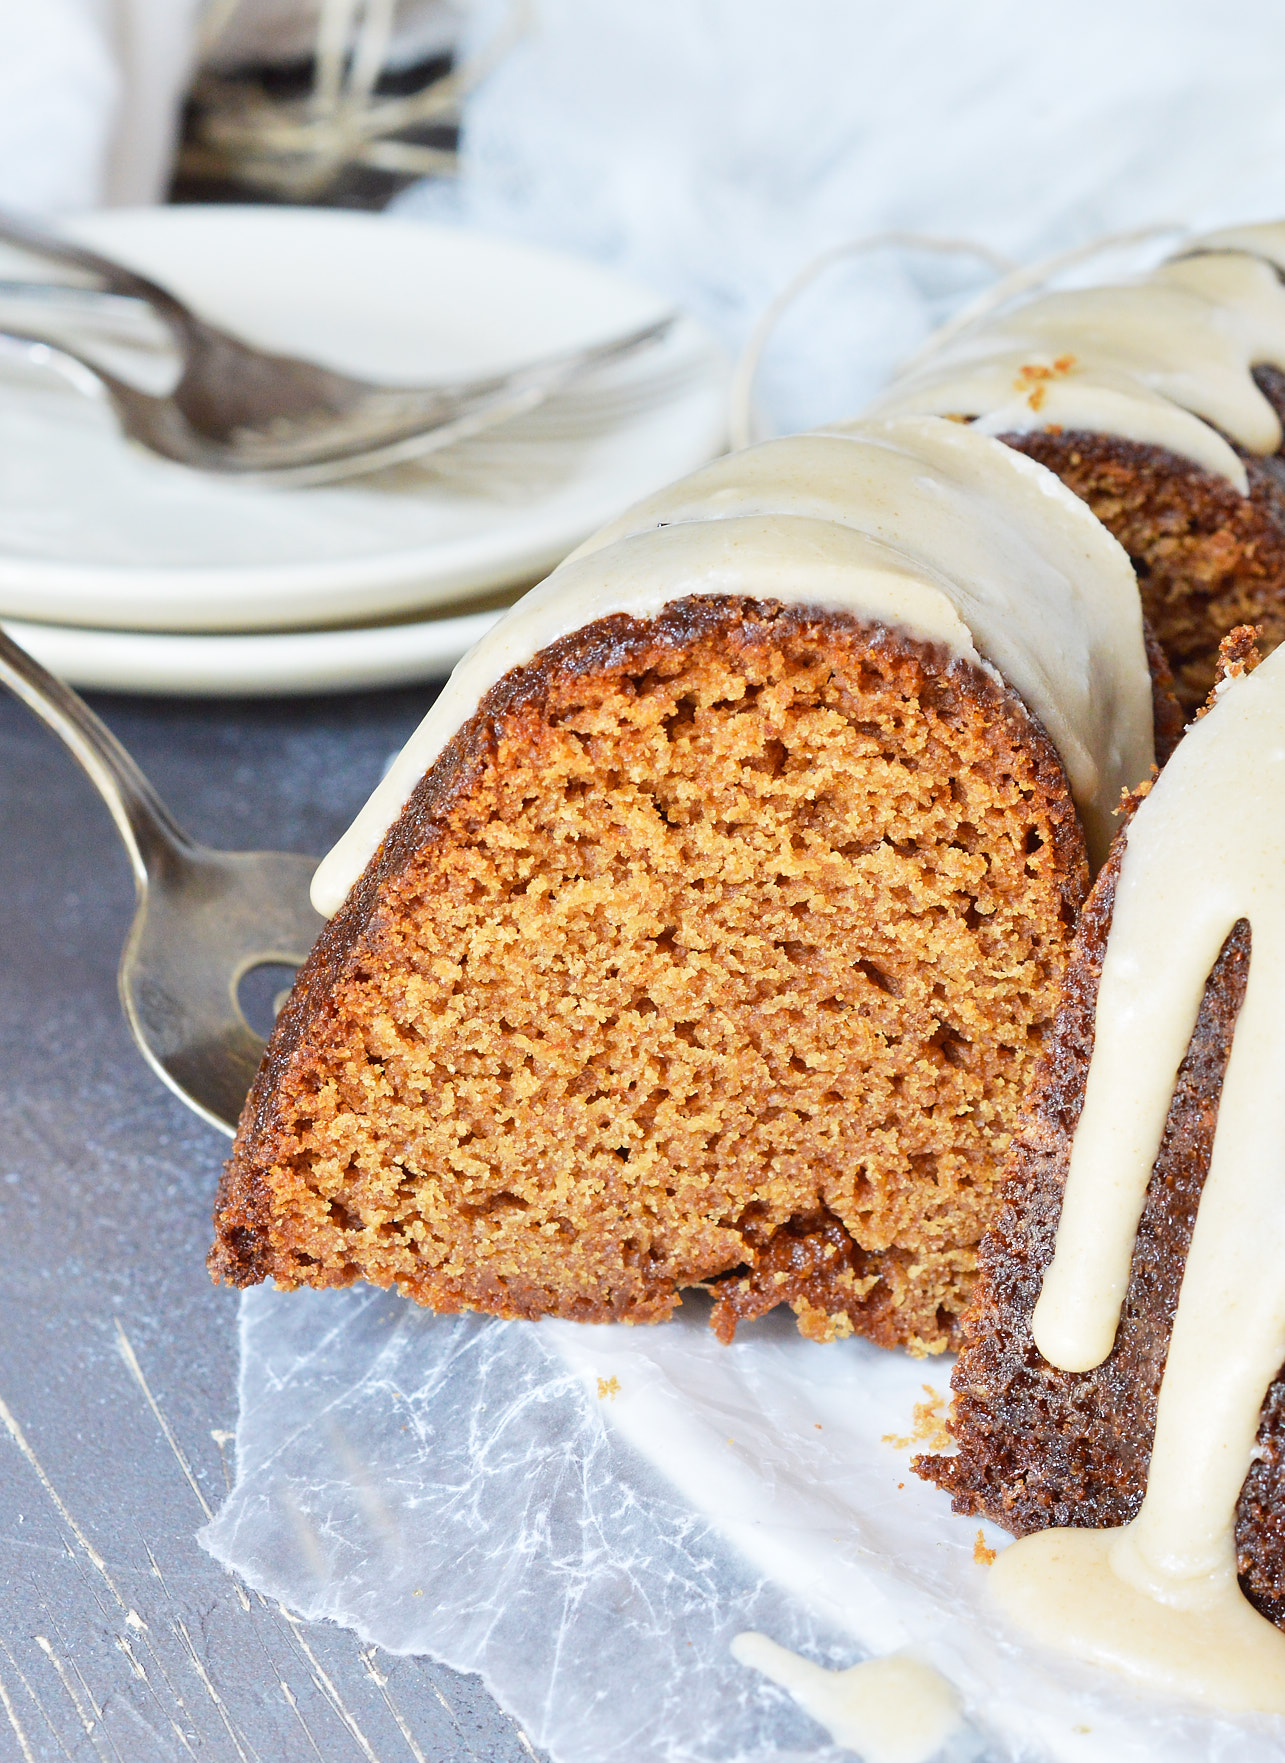 Banana Carrot Bundt Cake Recipe